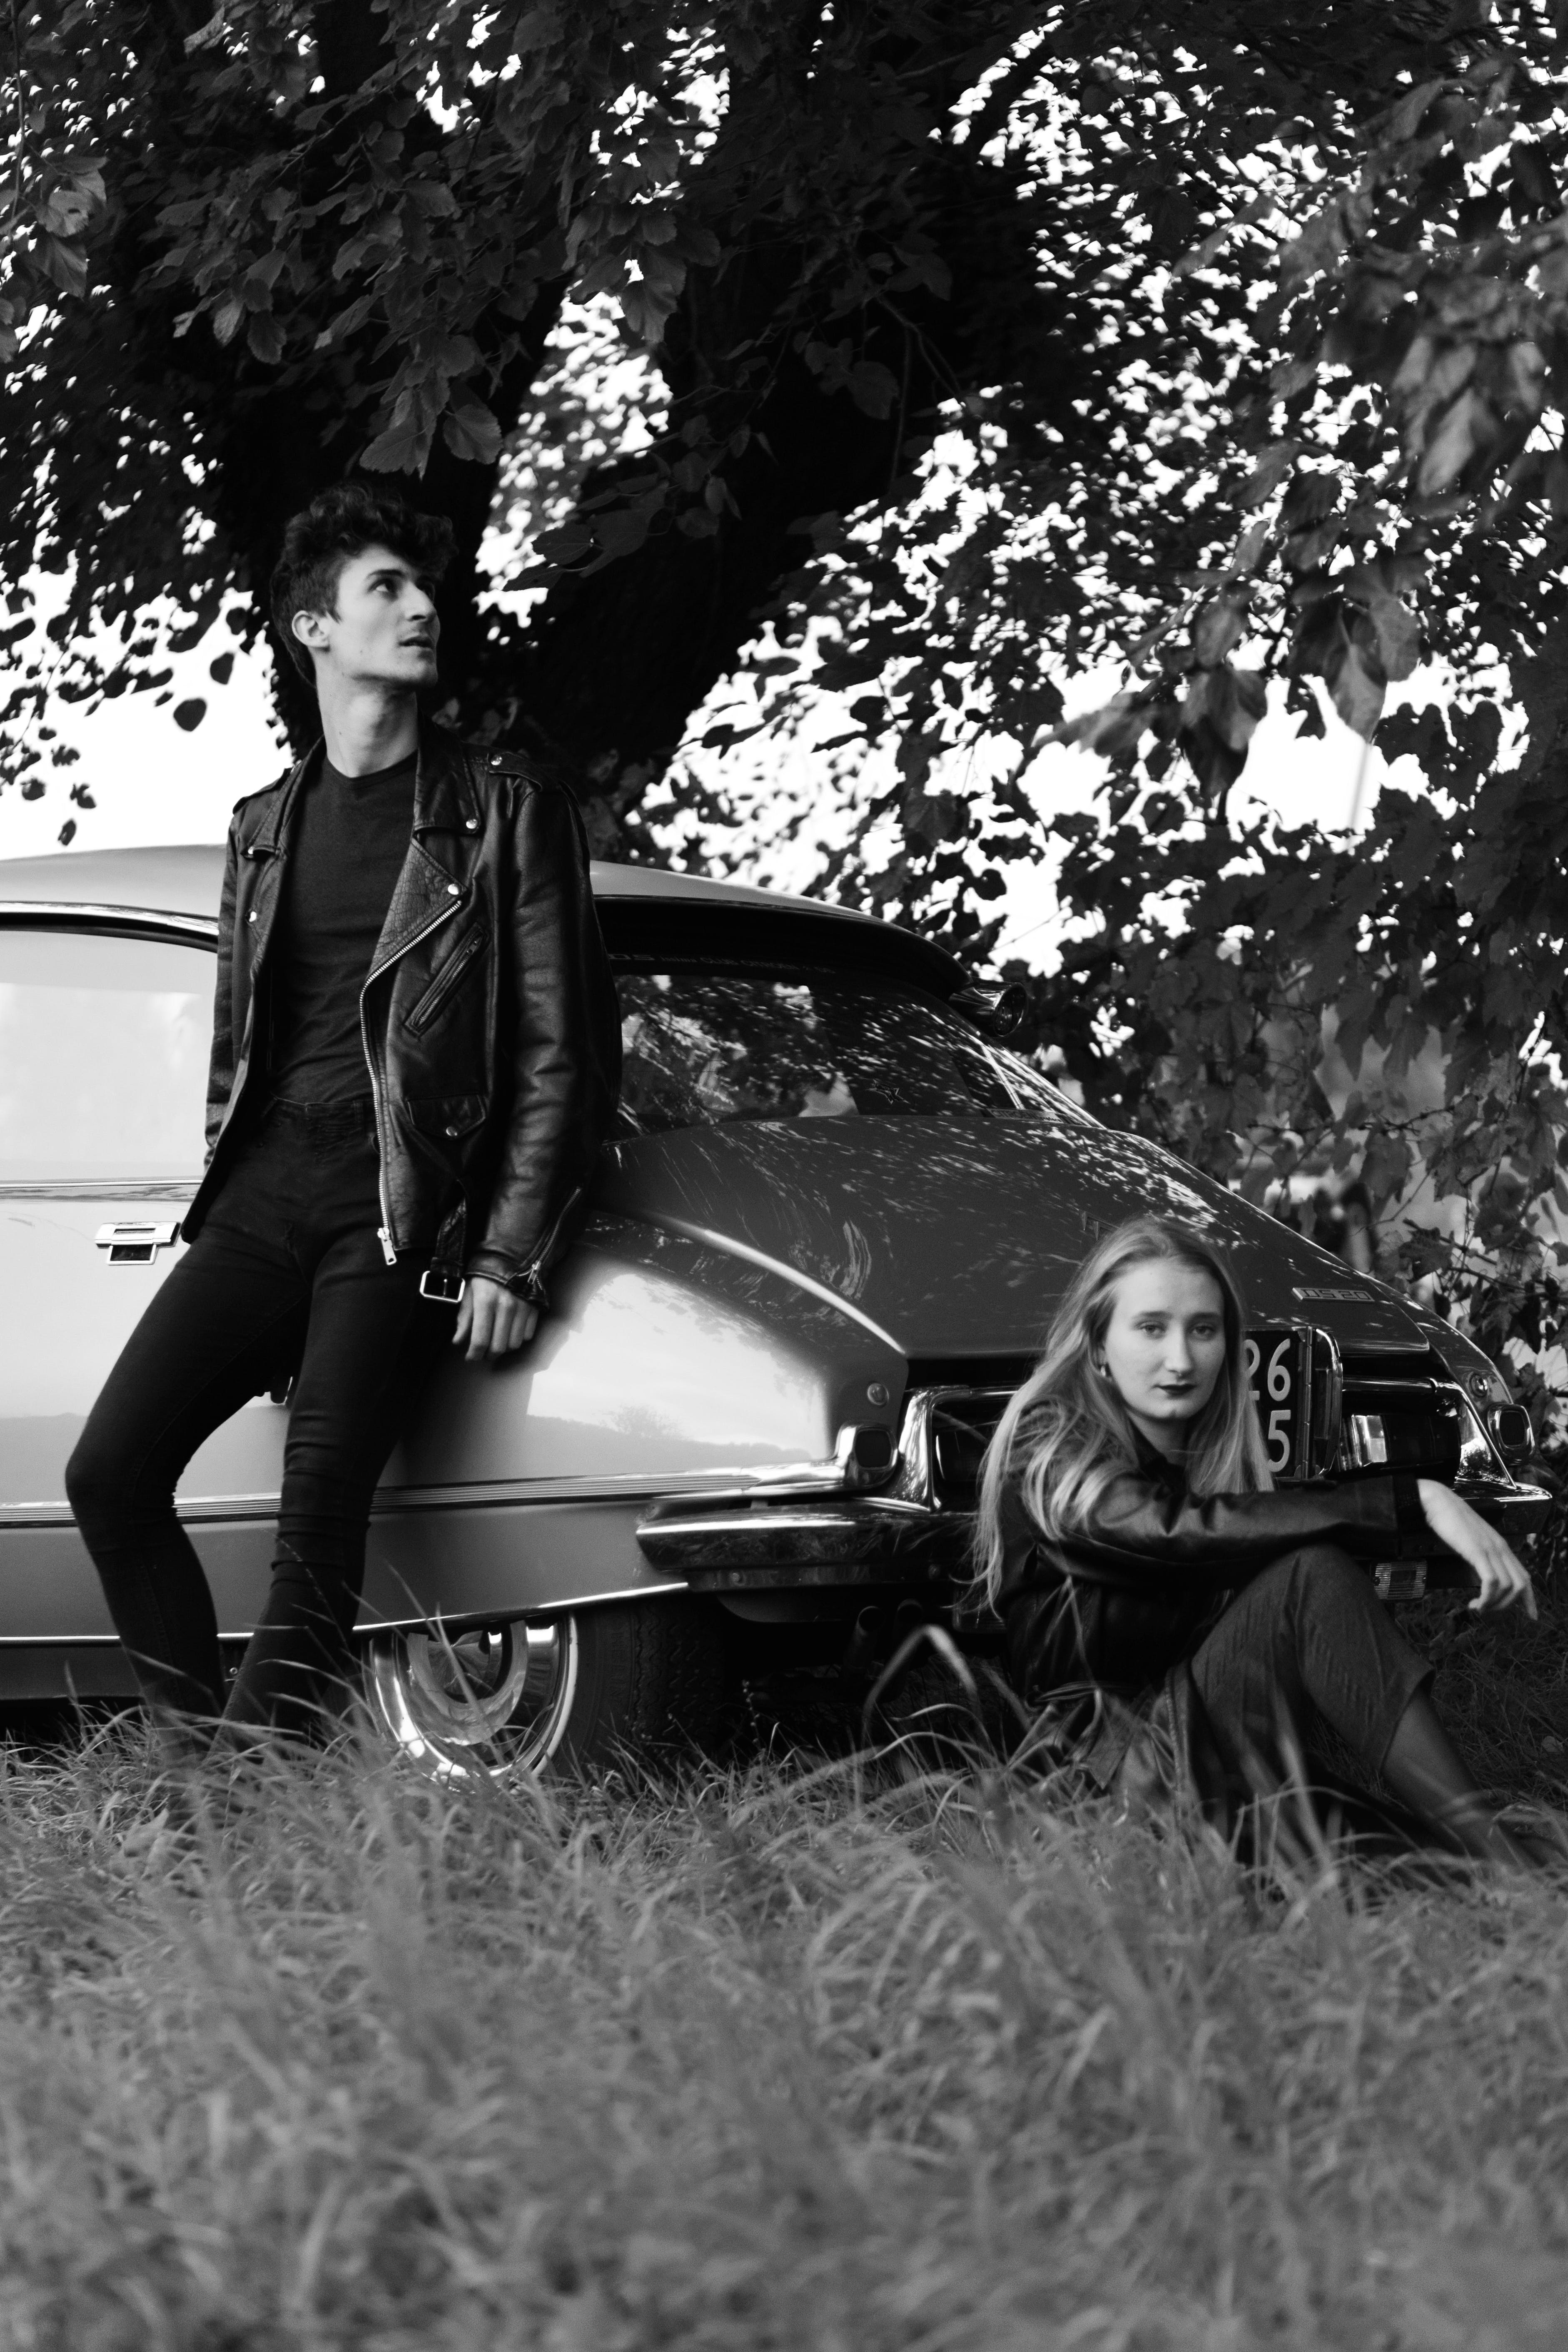 Man and Woman Leaning on Classic Car Park Near Tree